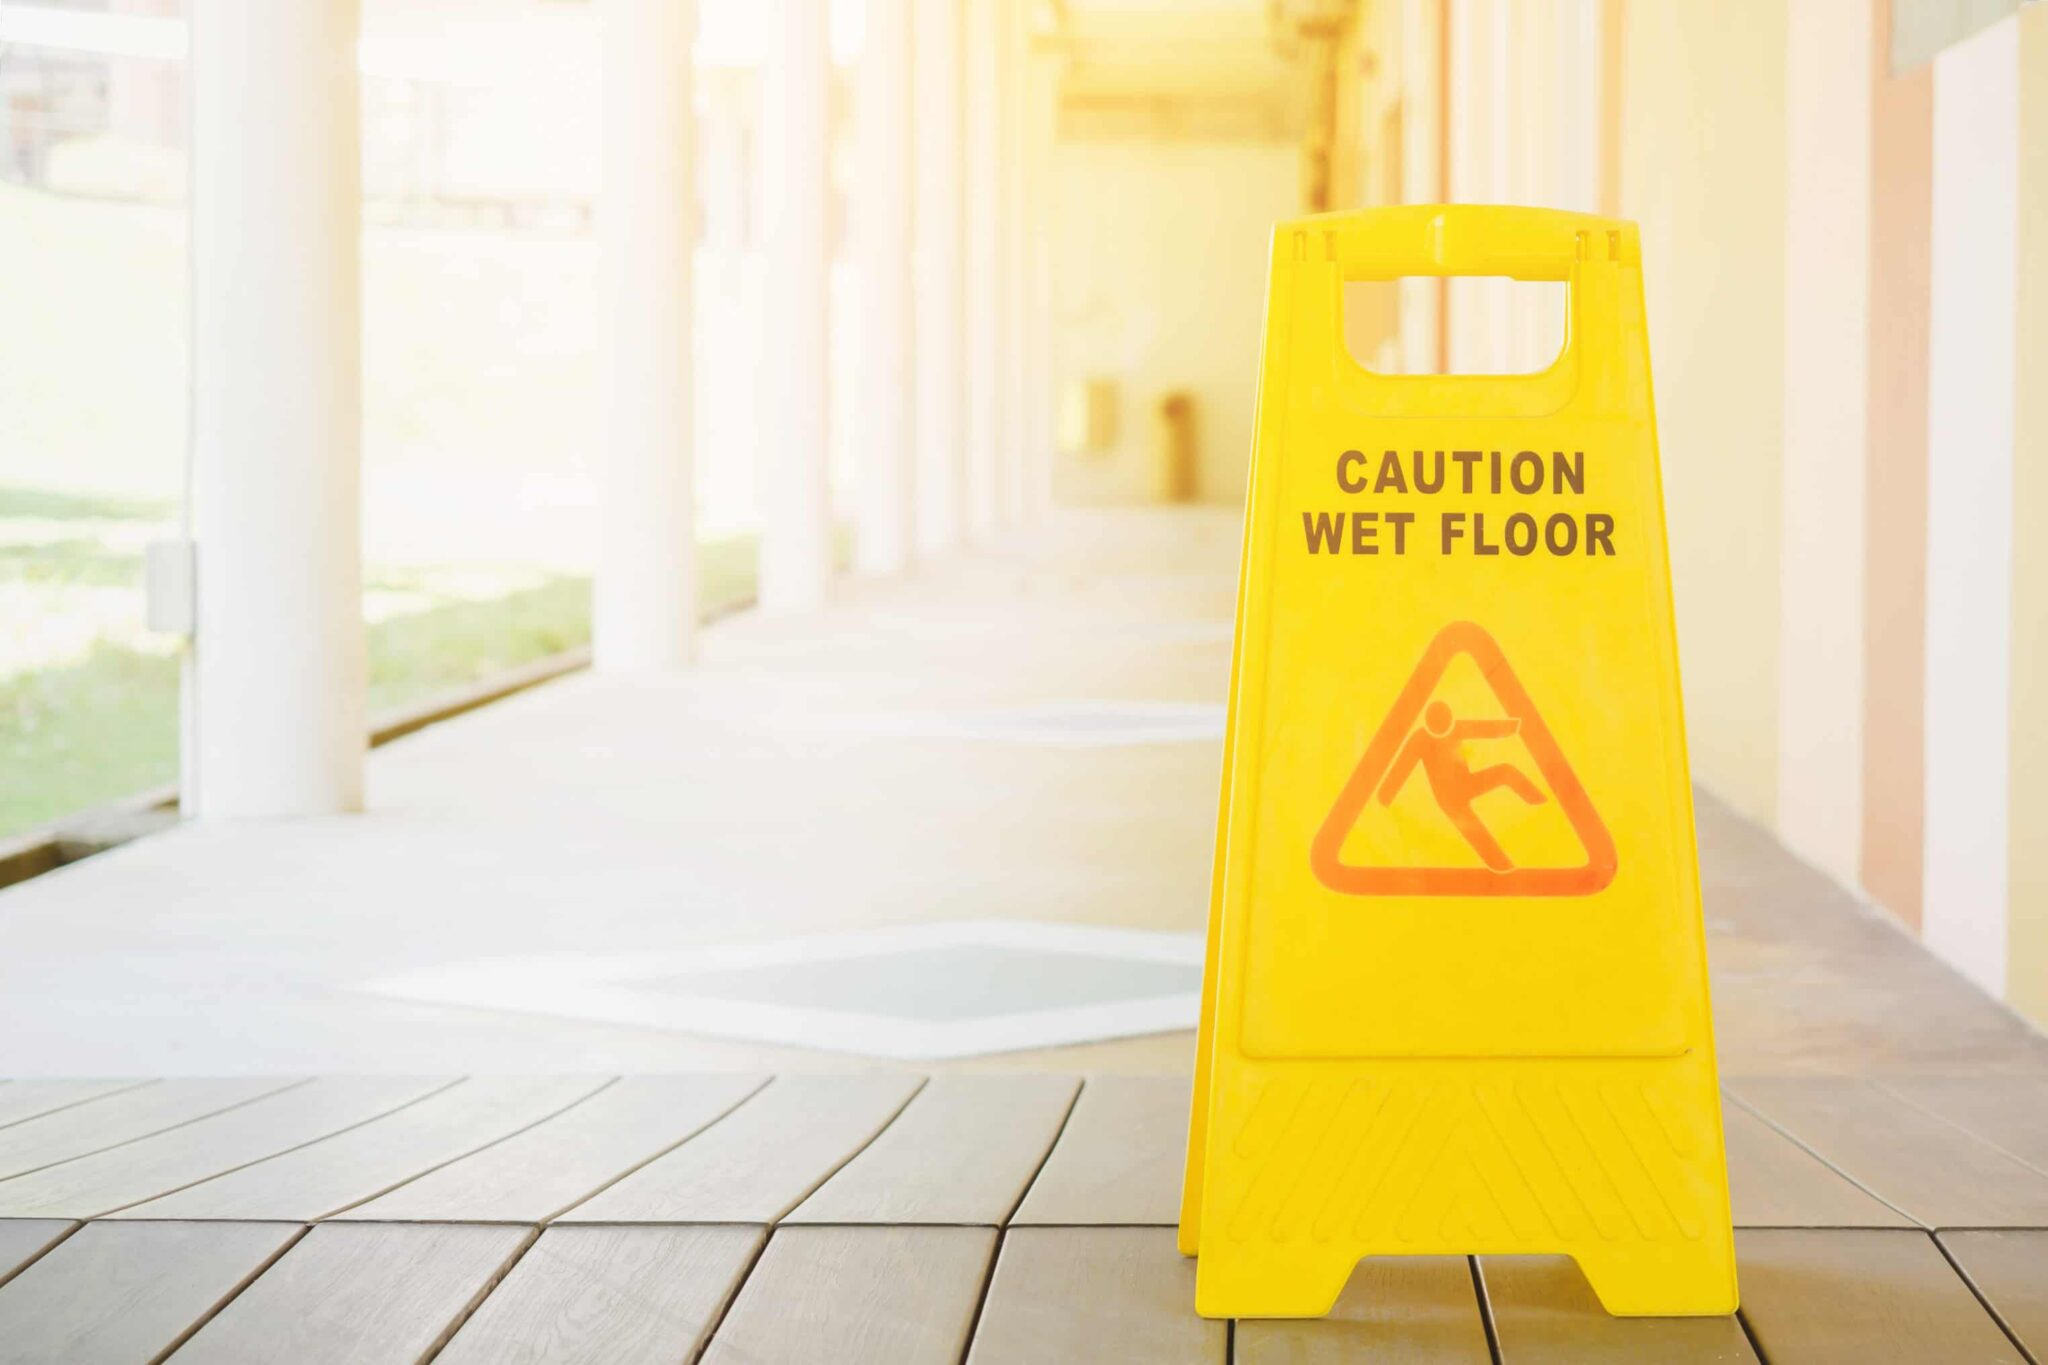 Caution Wet Floor sign on porch setting with bright sunny background